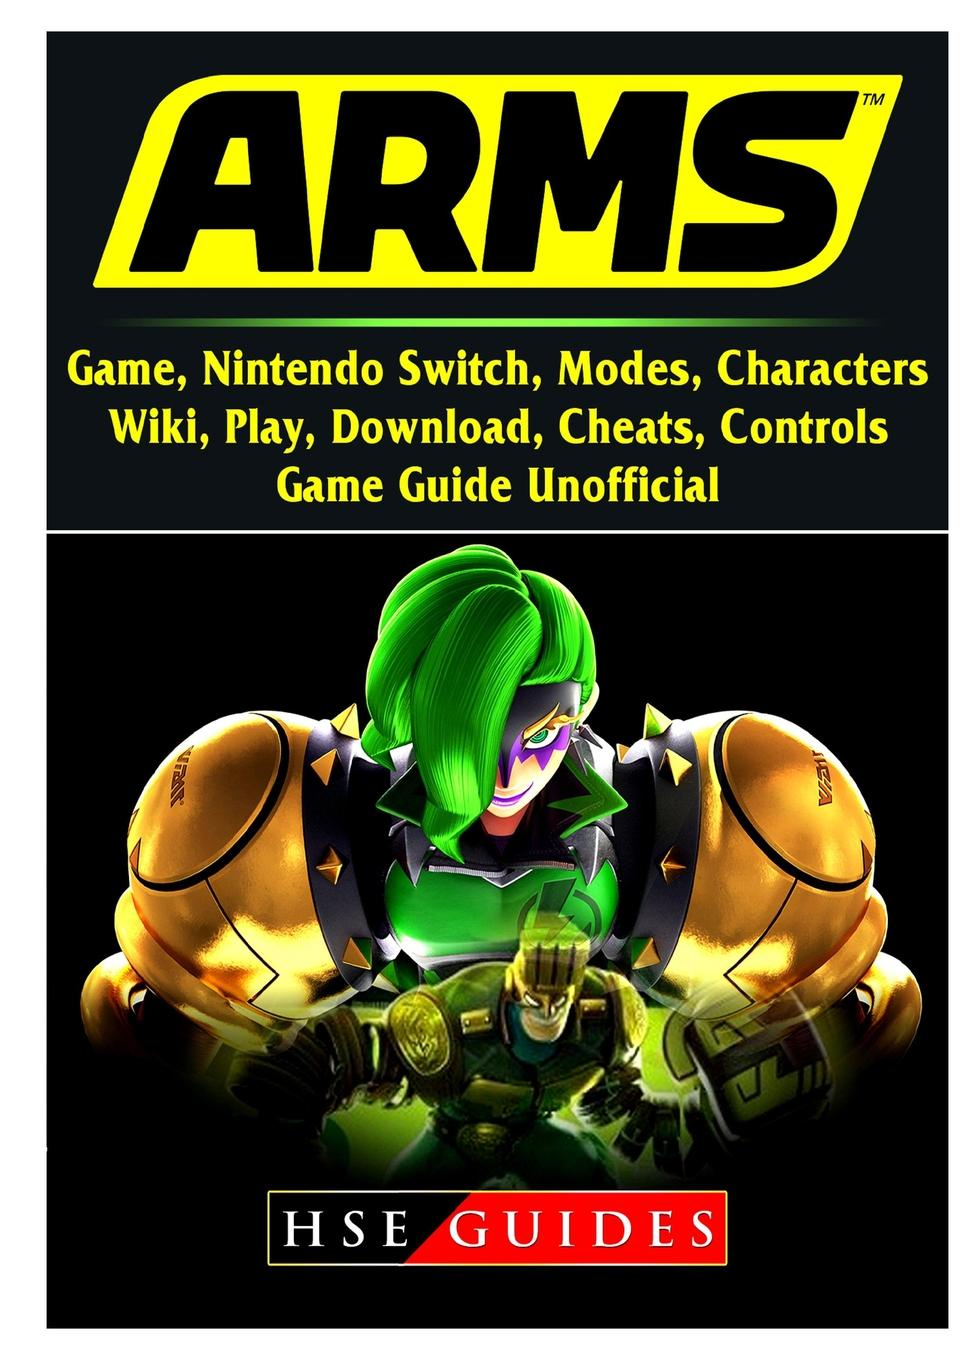 где купить HSE Guides Arms Game, Nintendo Switch, Modes, Characters, Wiki, Play, Download, Cheats, Controls, Game Guide Unofficial по лучшей цене